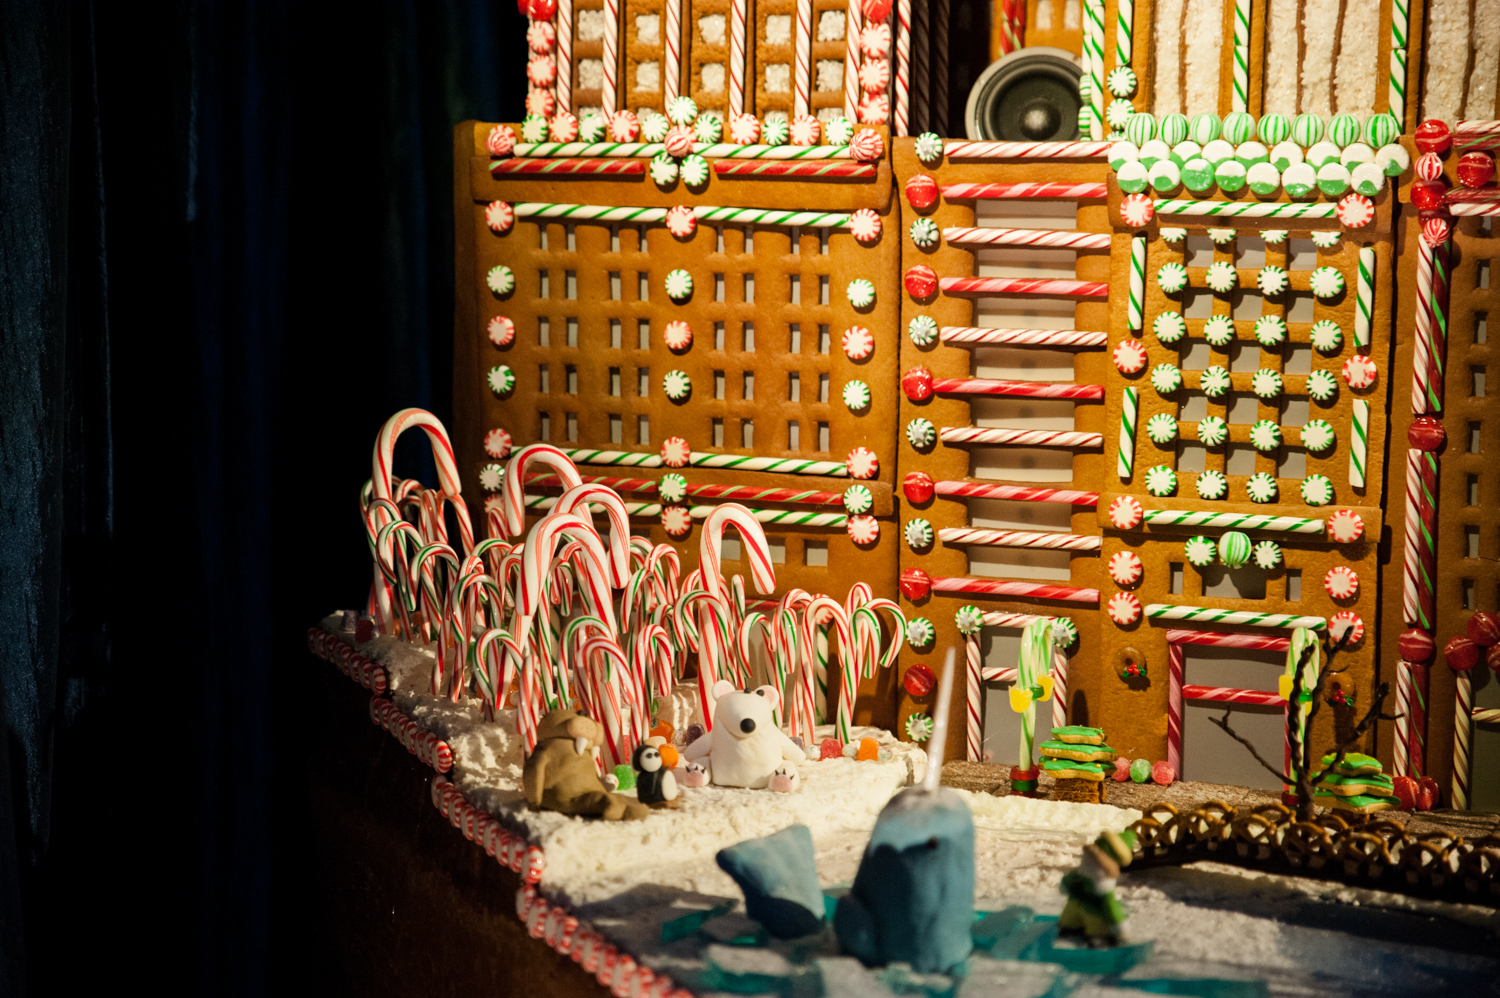 <p>Each year the Sheraton Hotel culinary team and top local architecture firms design and bake larger-than-life gingerbread 'houses' for the public to delight in. The houses are on display in the lobby of the Sheraton Grand Seattle, and are free to the public (though donations benefitting JDRF Northwest Chapter are appreciated). This year's theme is #ElfLife, honoring different tales of elves from Santa's traditional helpers to their modern counterparts, like Elf on the Shelf. The exhibit is on display from Nov. 23, 2019 through January 1, 2020, from 9 a.m. to 9 p.m. weekdays, weekends open until 11p.m. (Image: Elizabeth Crook / Seattle Refined)</p><p><br></p>